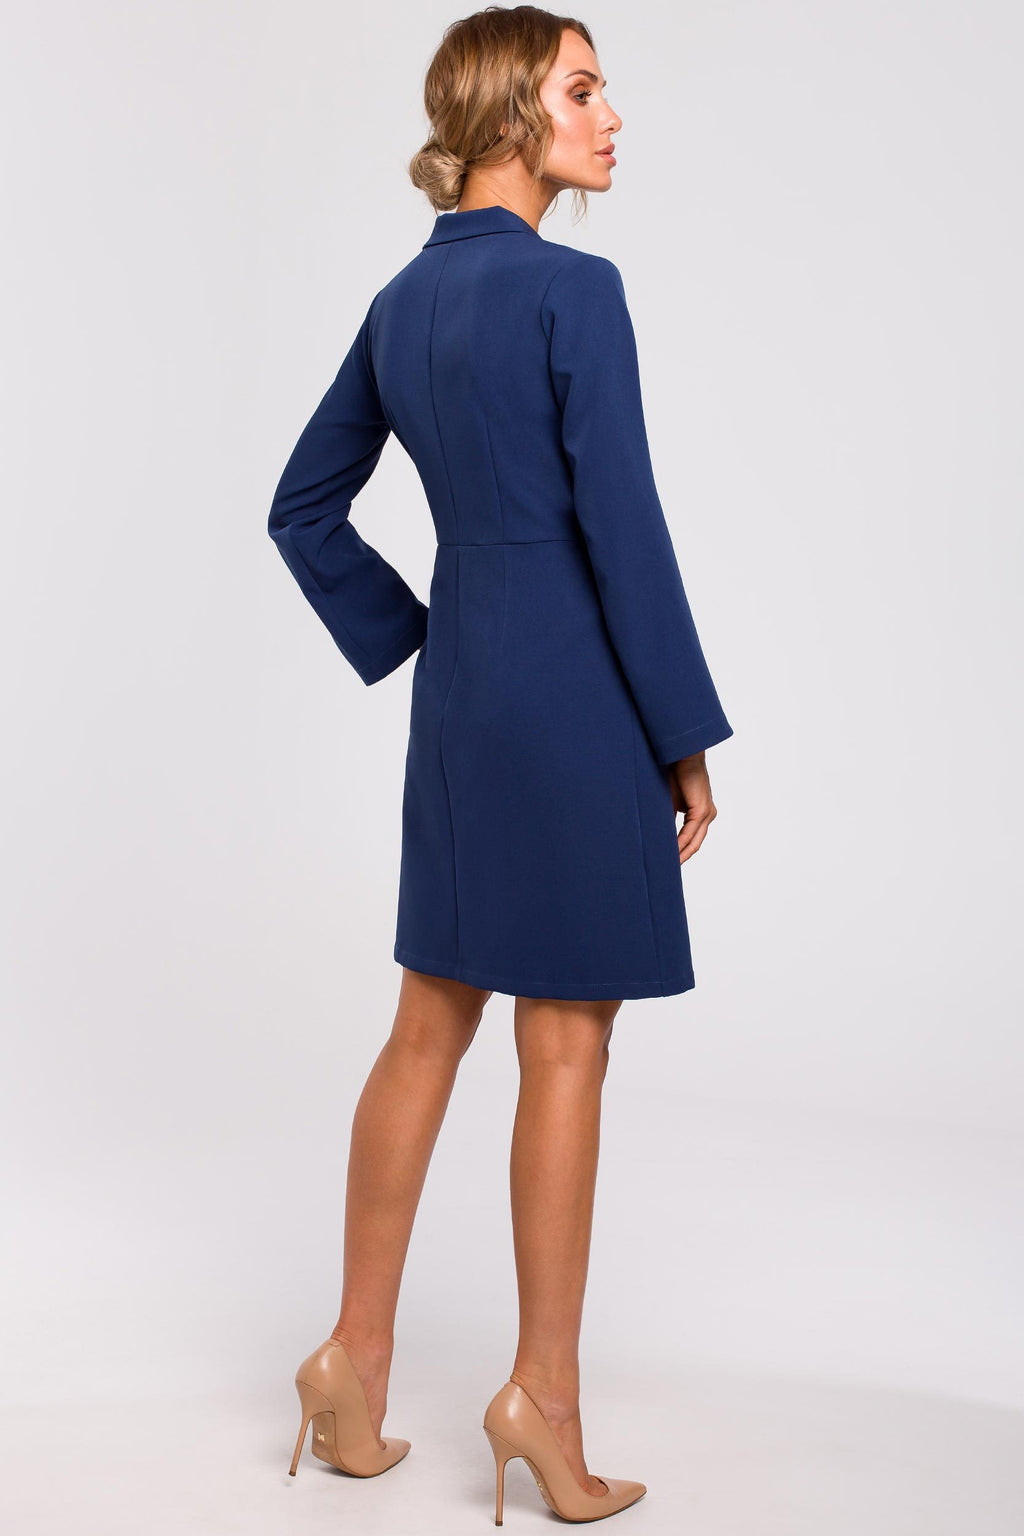 Navy Blue Wrap Blazer Dress With Wide Sleeves